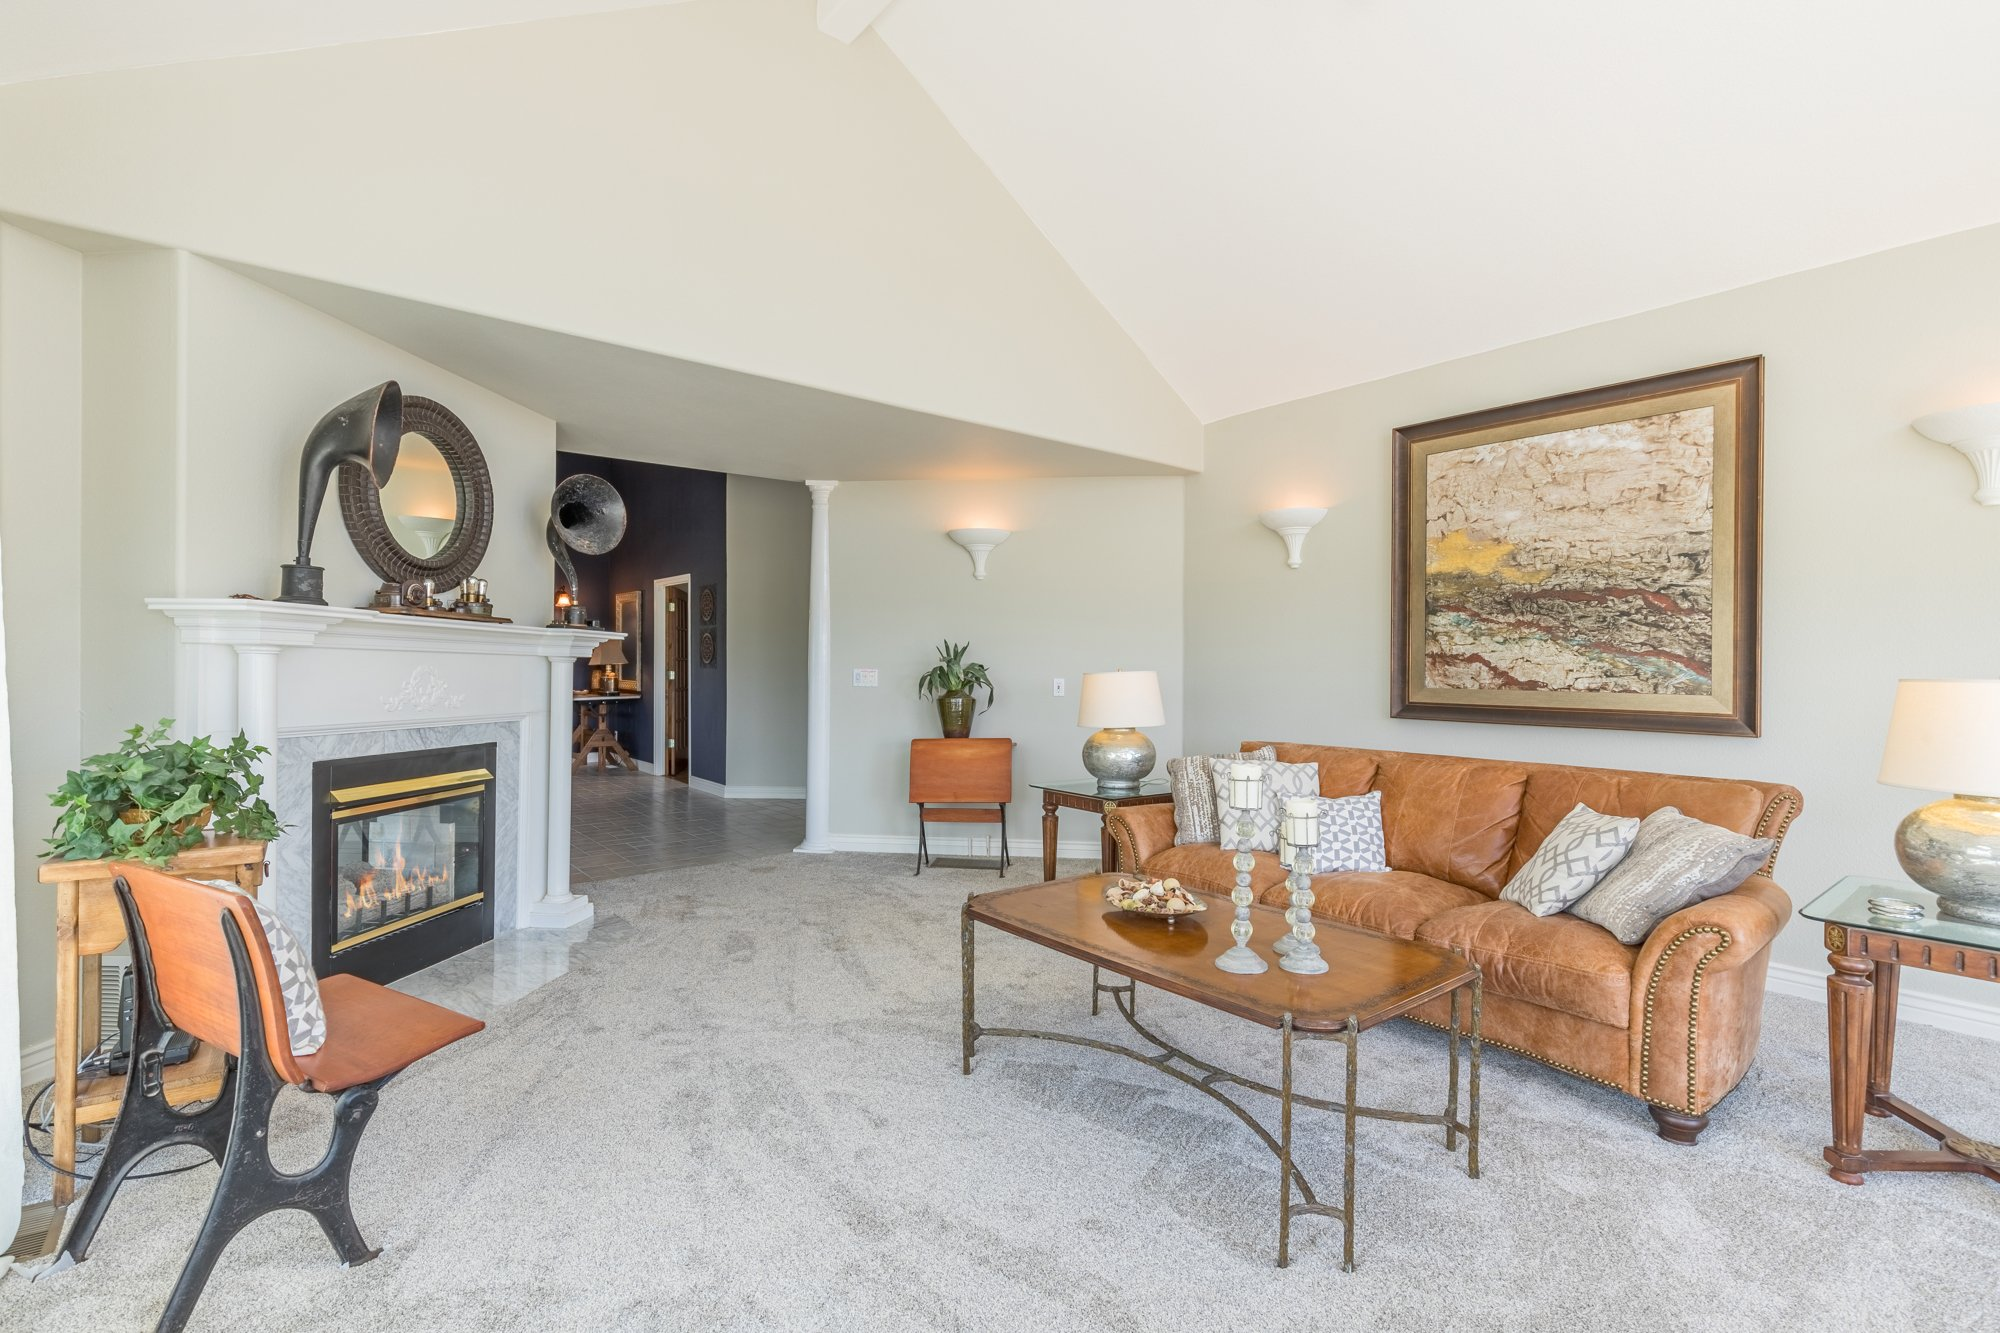 Living Room with Pass Through Gas FIreplace - 16955 Wildwood Dr. Montrose, CO 81403 - Atha Team Luxury Real Estate